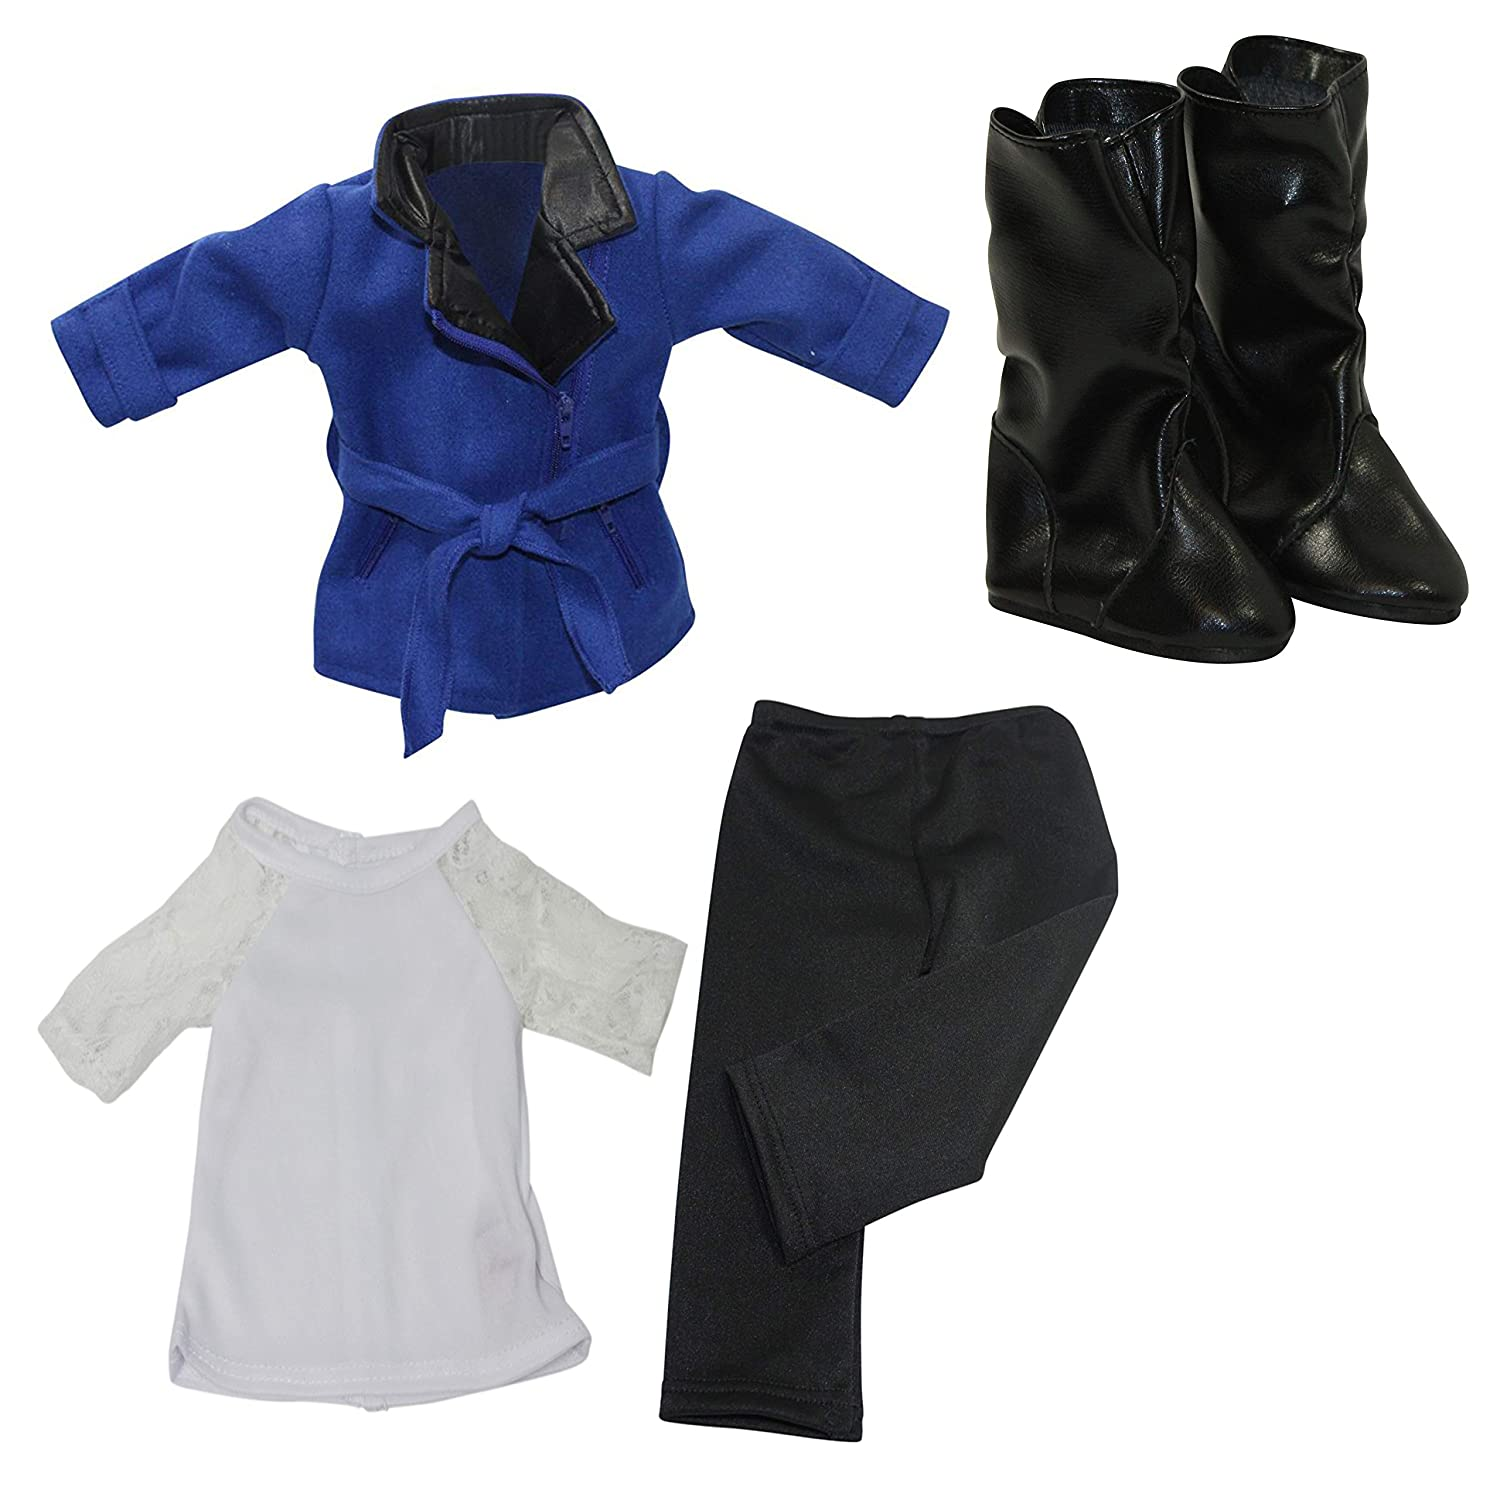 White Top with Lace Trim Arianna 4pcs Bundle 18 inch Doll Clothes Black Leggings Black Trendy Boots Fits American Girl Dolls Blue Wool Trendy Coat